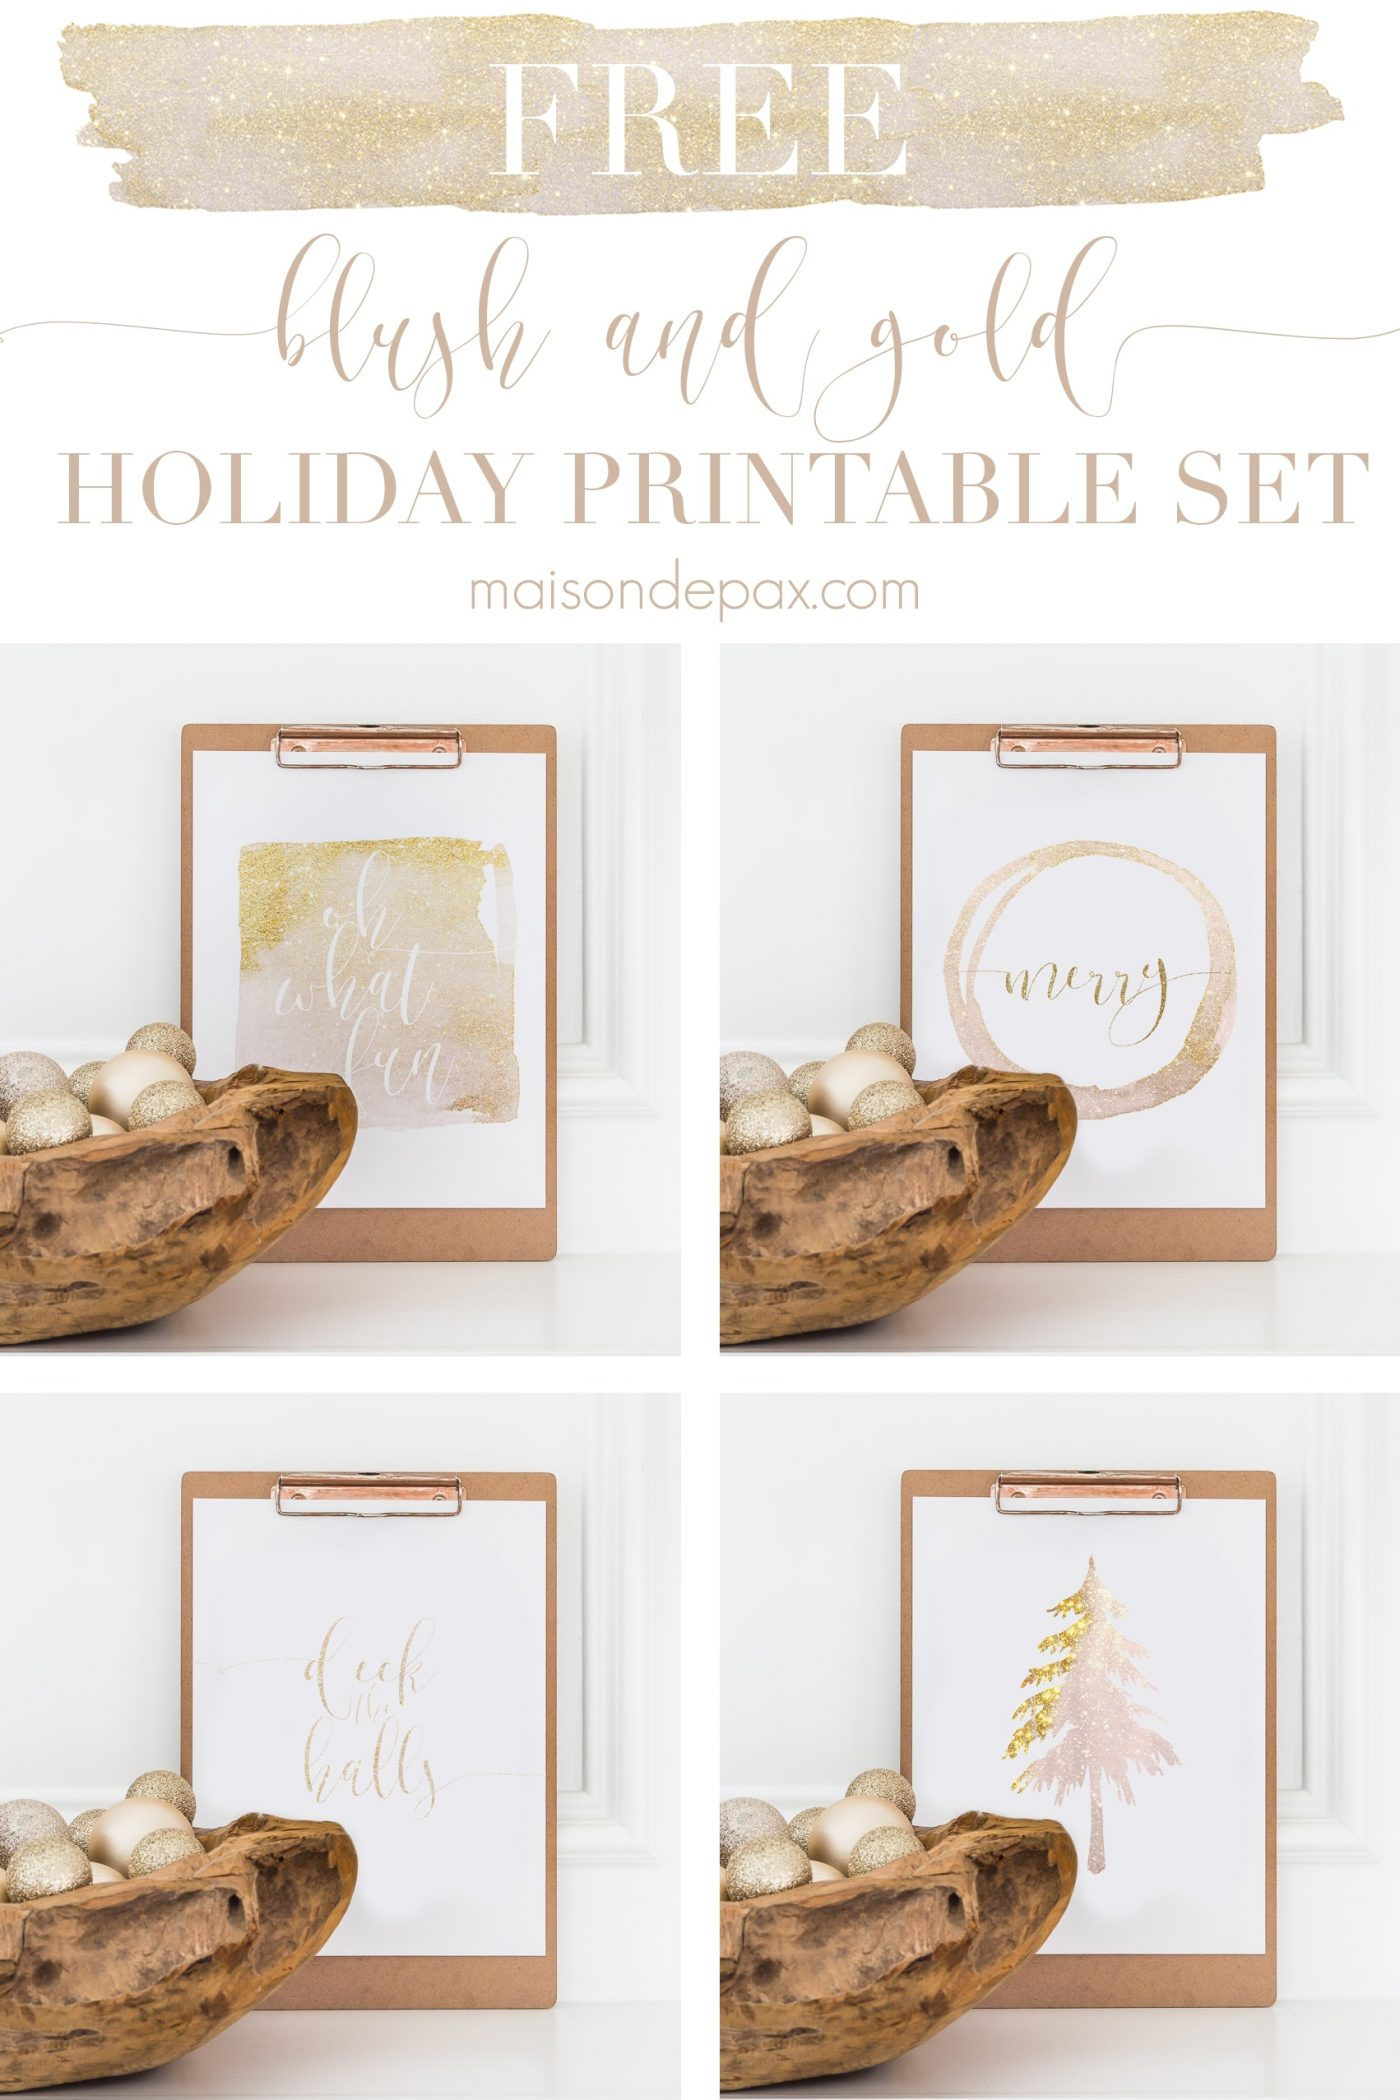 four clipboards with different holiday printables in gold glitter and blush: oh what fun, merry, a tree, and deck the halls